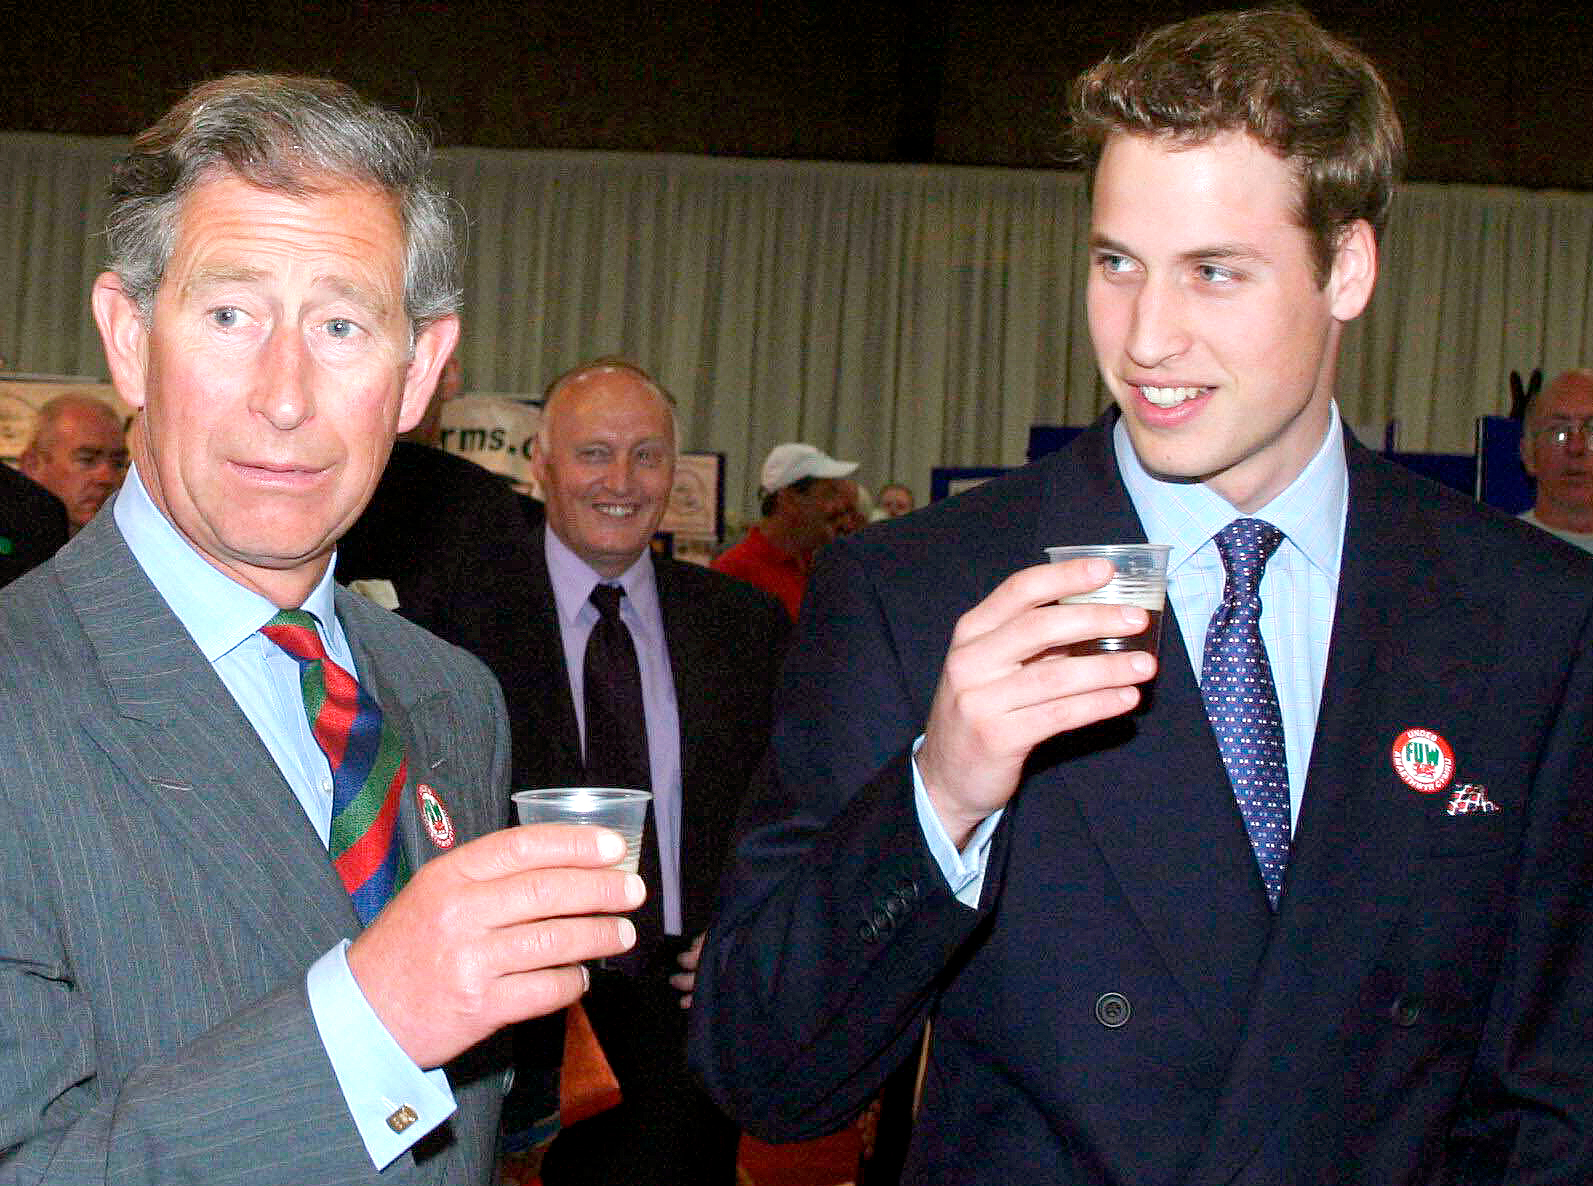 A-Beer-for-the-Birthday-Boy-Prince-Charles-And-Prince-William-beer - In June 2003, Prince William, who was days shy of celebrating his 21st birthday, had a beer on a visit to the Anglesey Agricultural centre in Anglesey, Wales, with his father, Prince Charles. The outing was part of the royal's birthday tour of Wales.